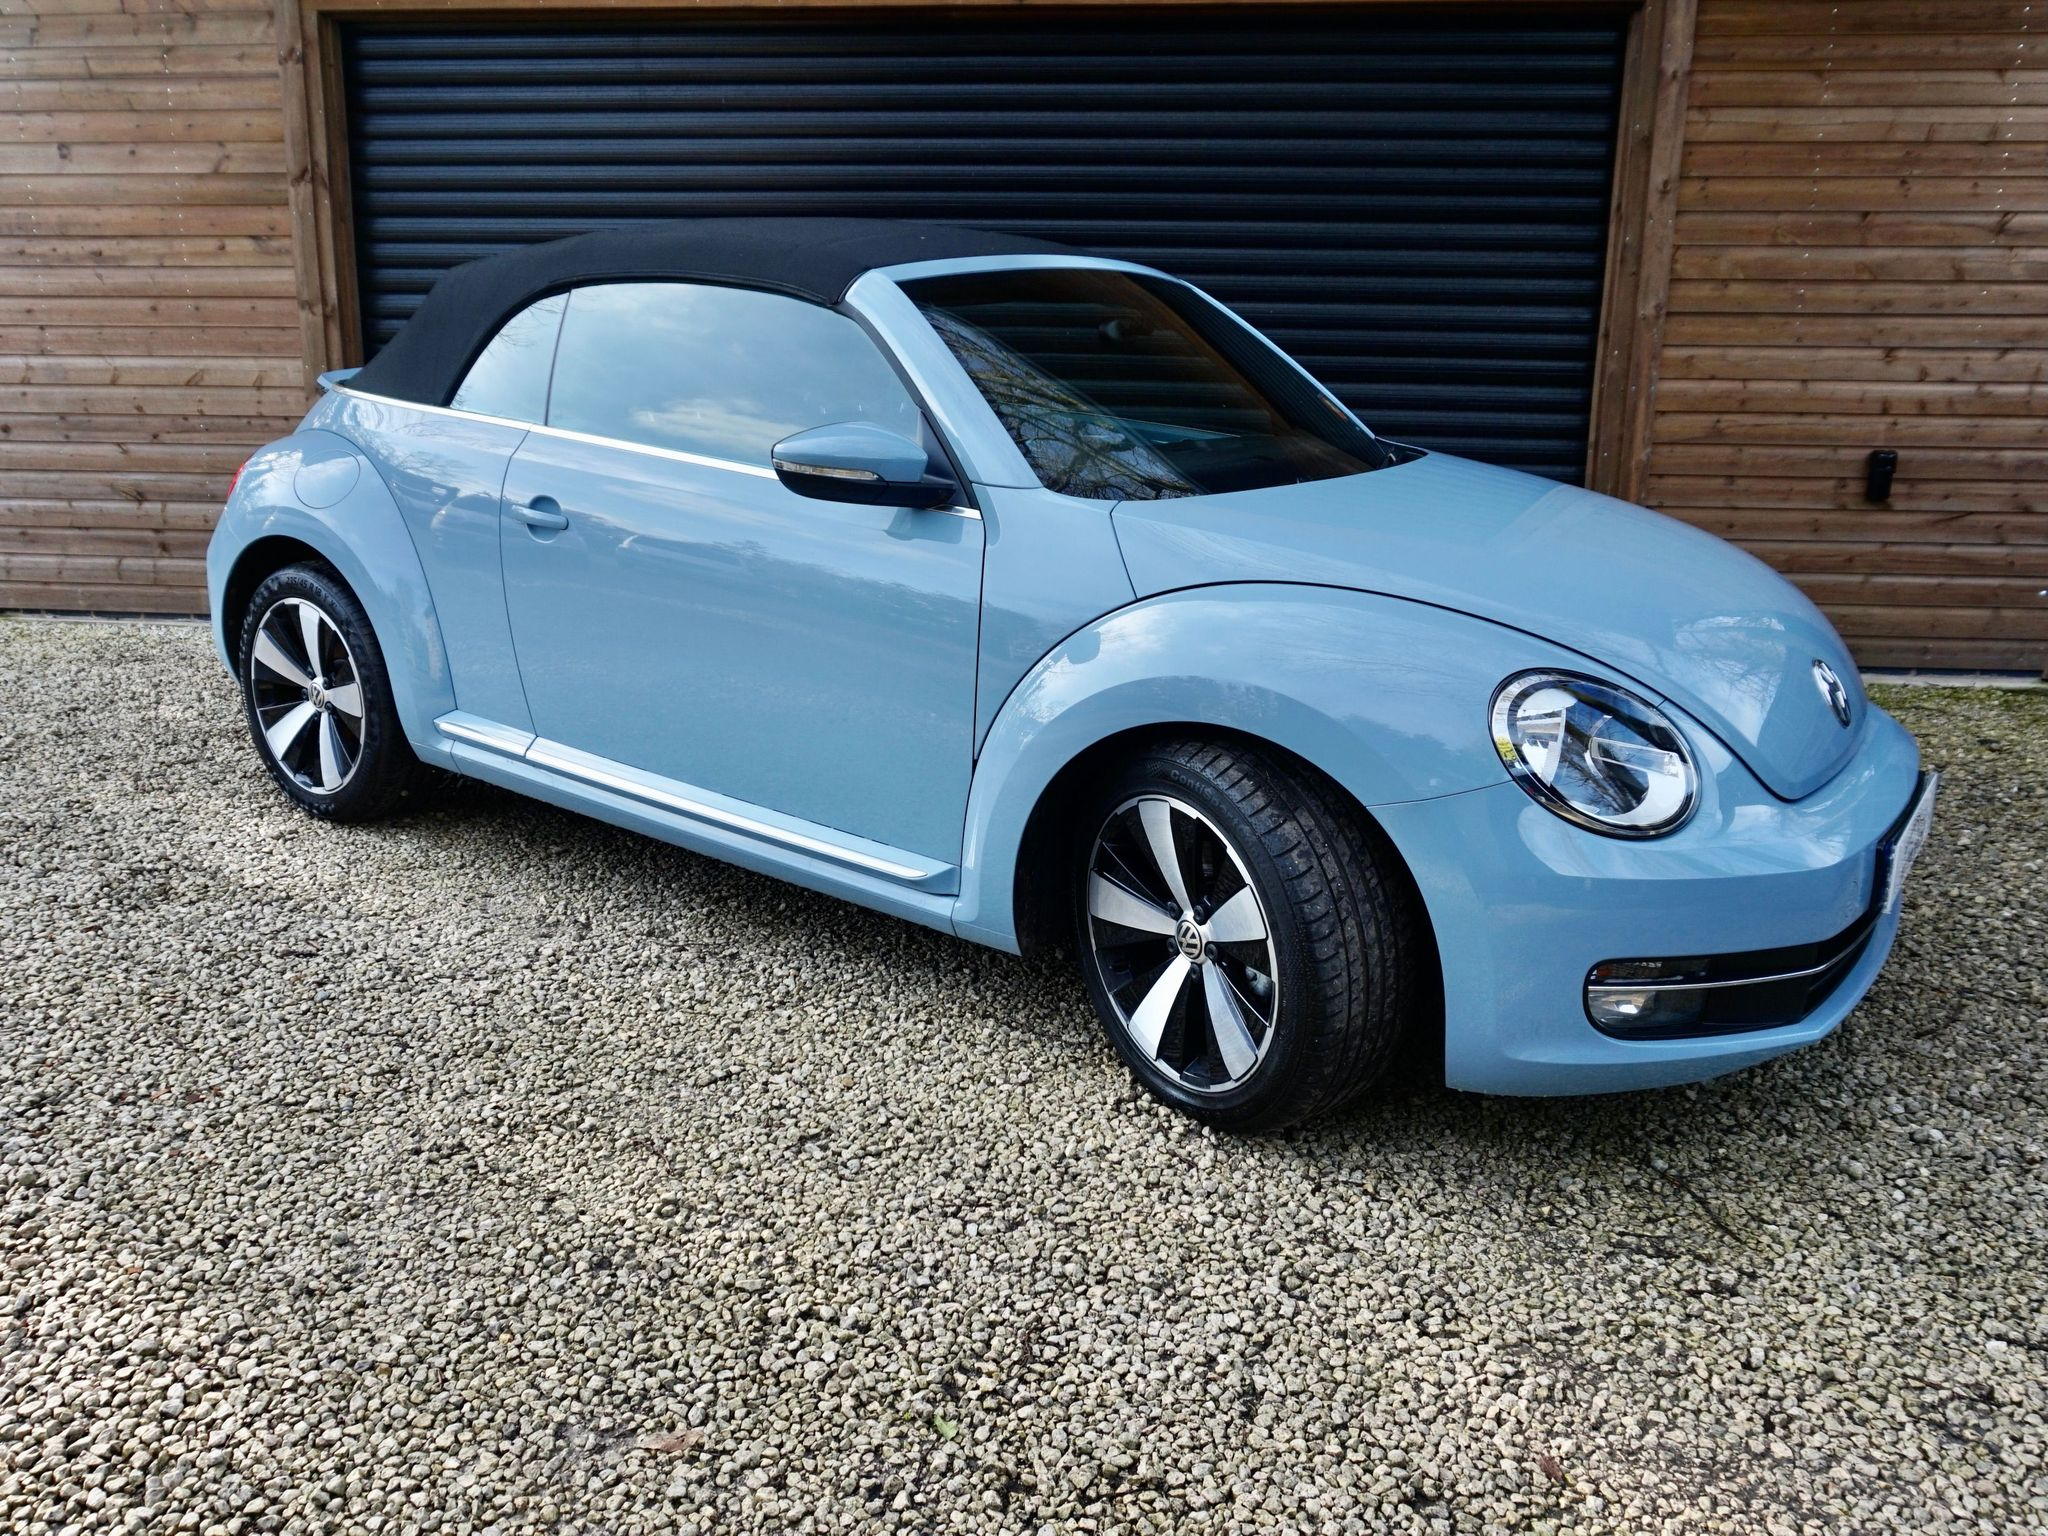 Blue Petrol Volkswagen Beetle Convertible Used Cars For Sale Autotrader Uk